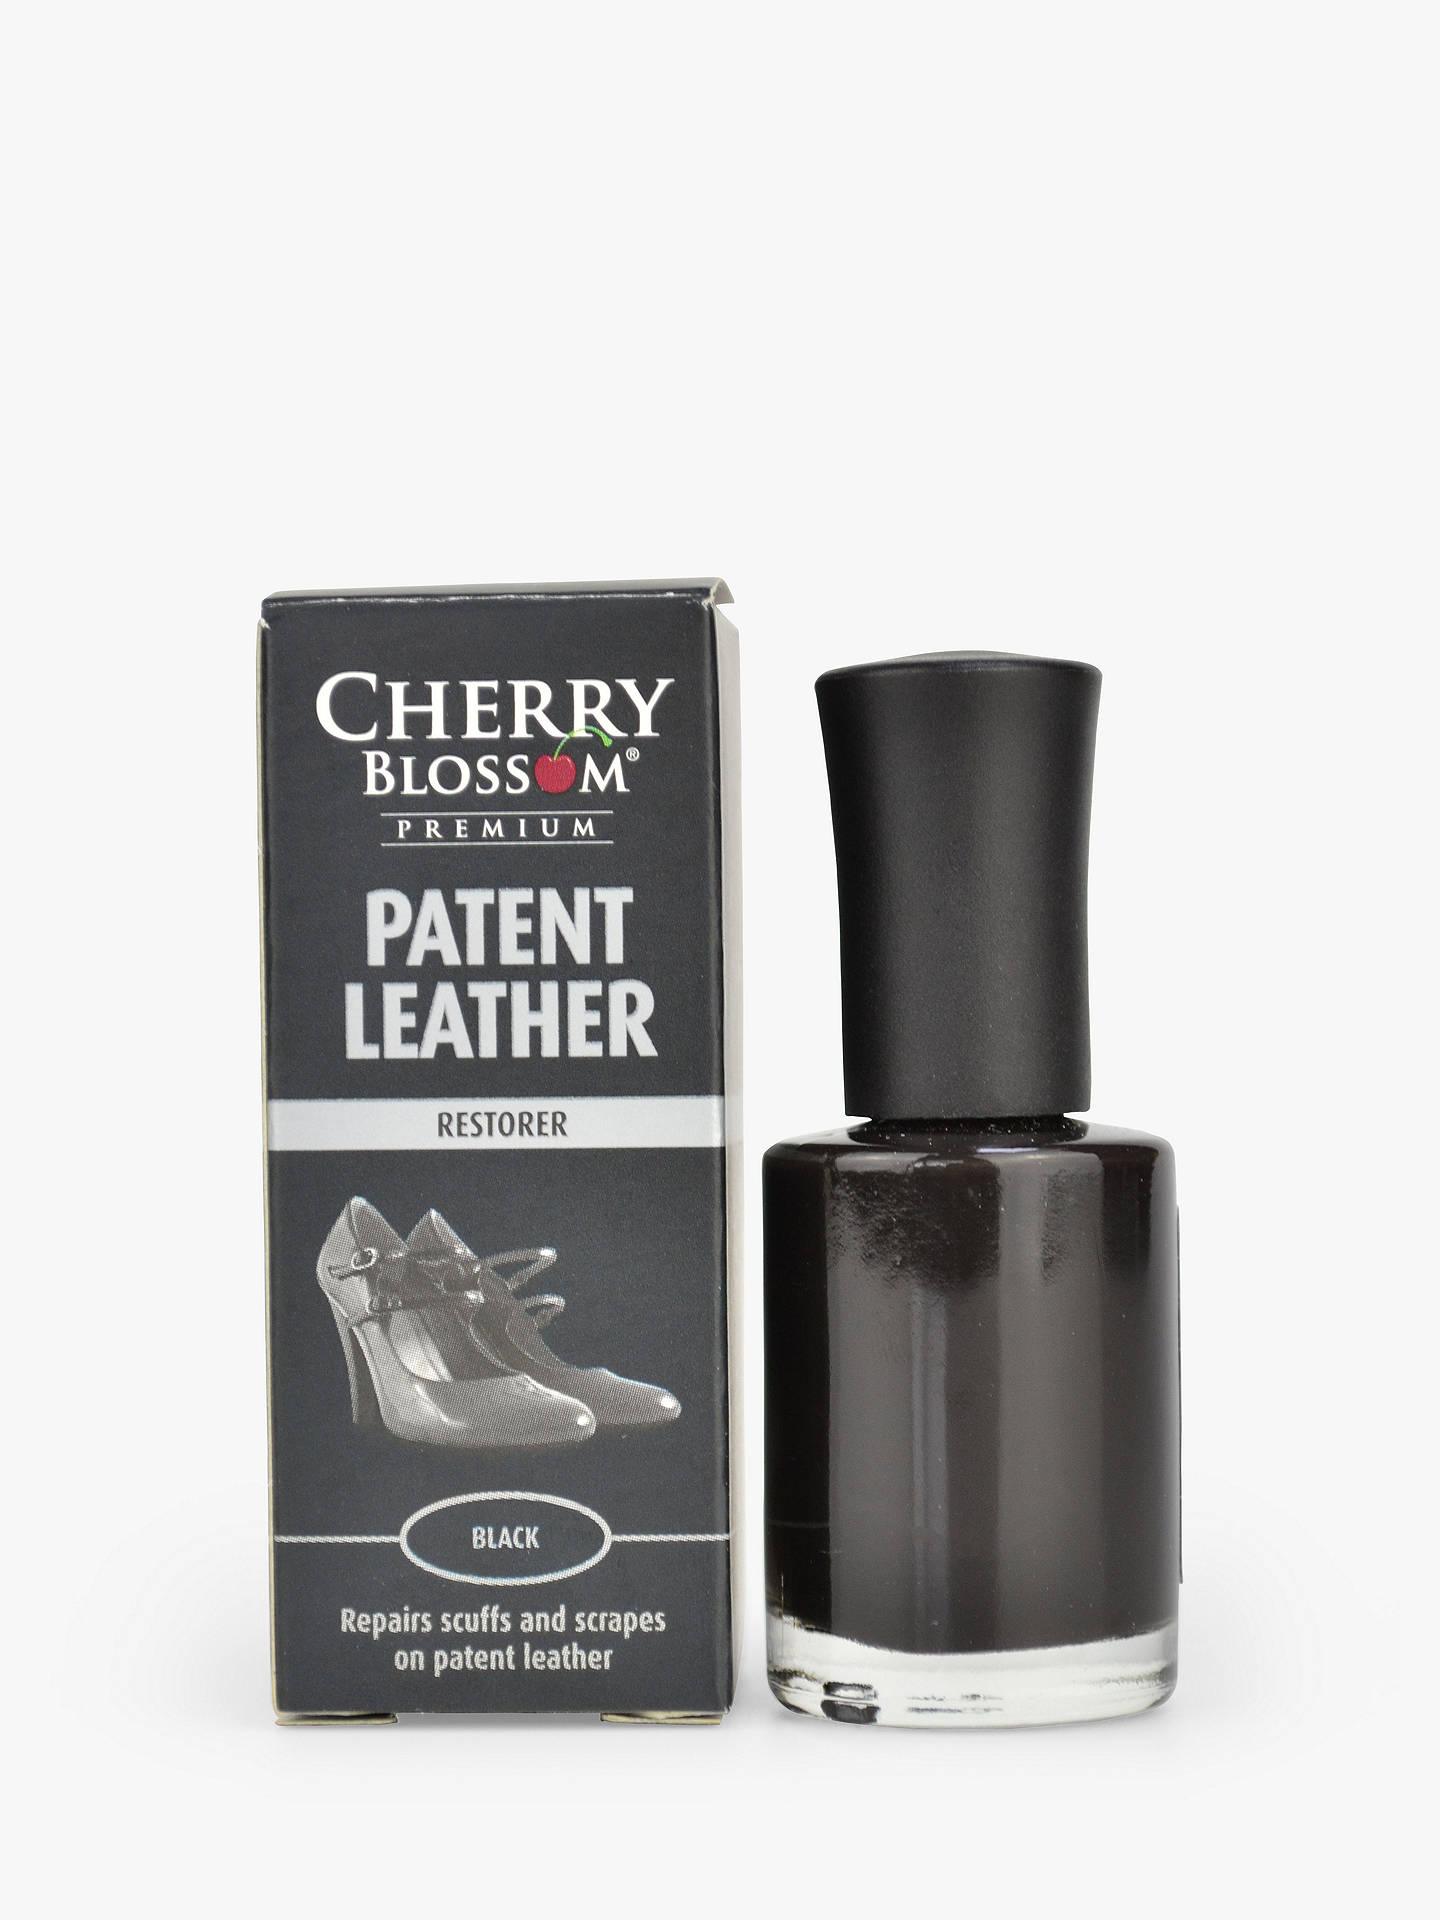 BuyCherry Blossom Patent Leather Restorer, Black Online at johnlewis.com